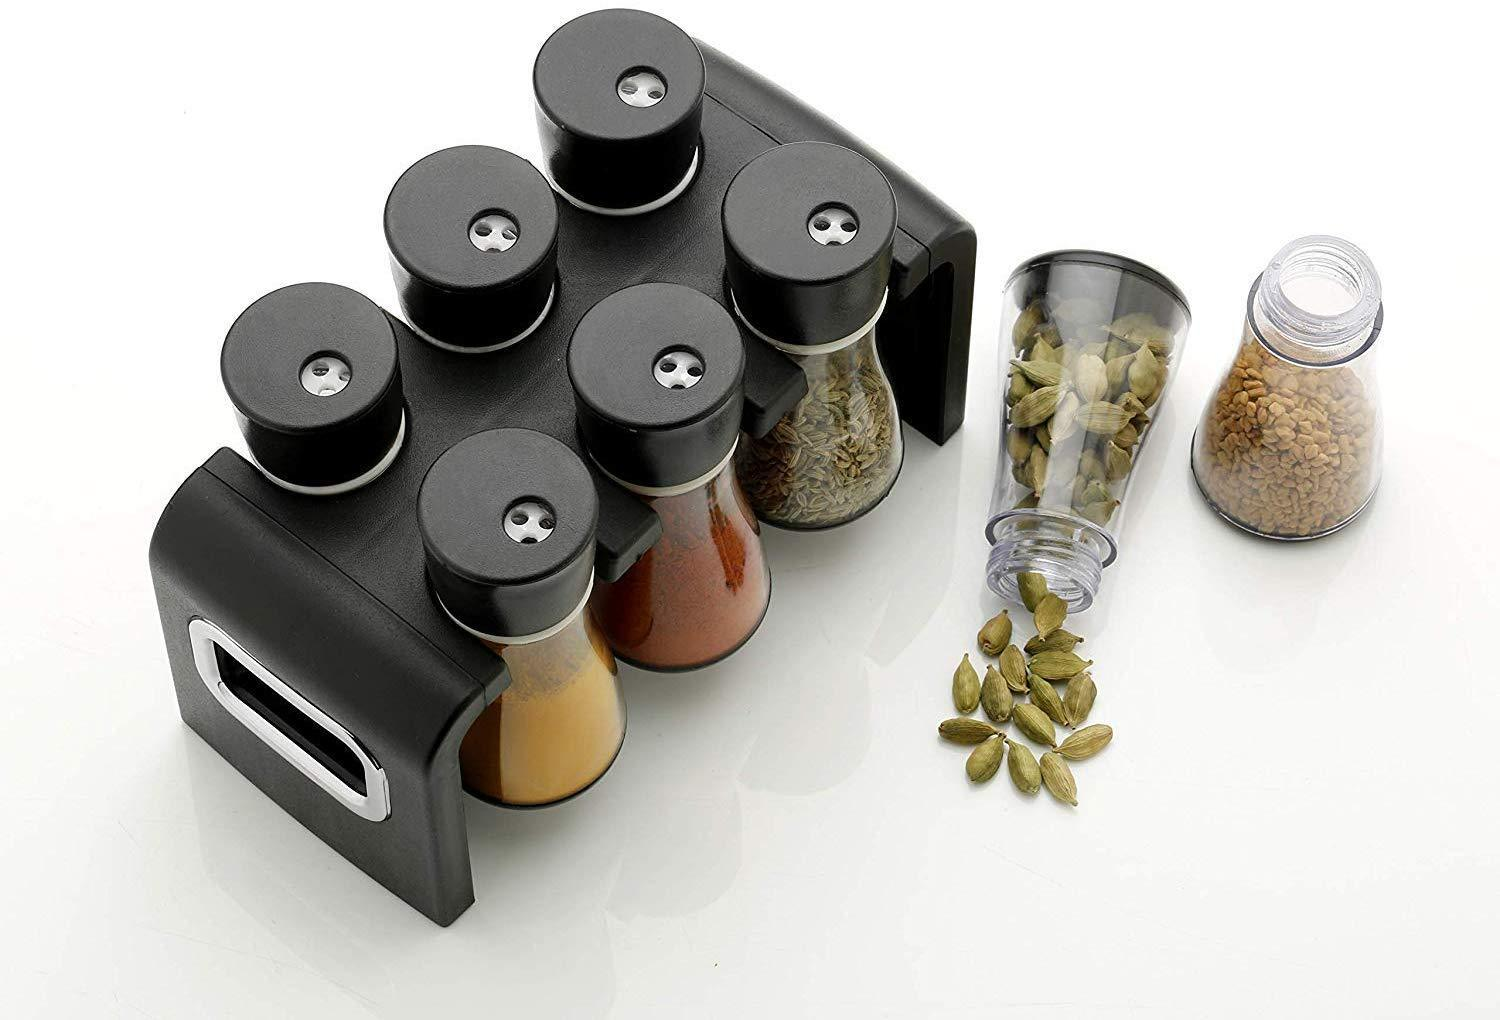 6-Jar Spice Rack